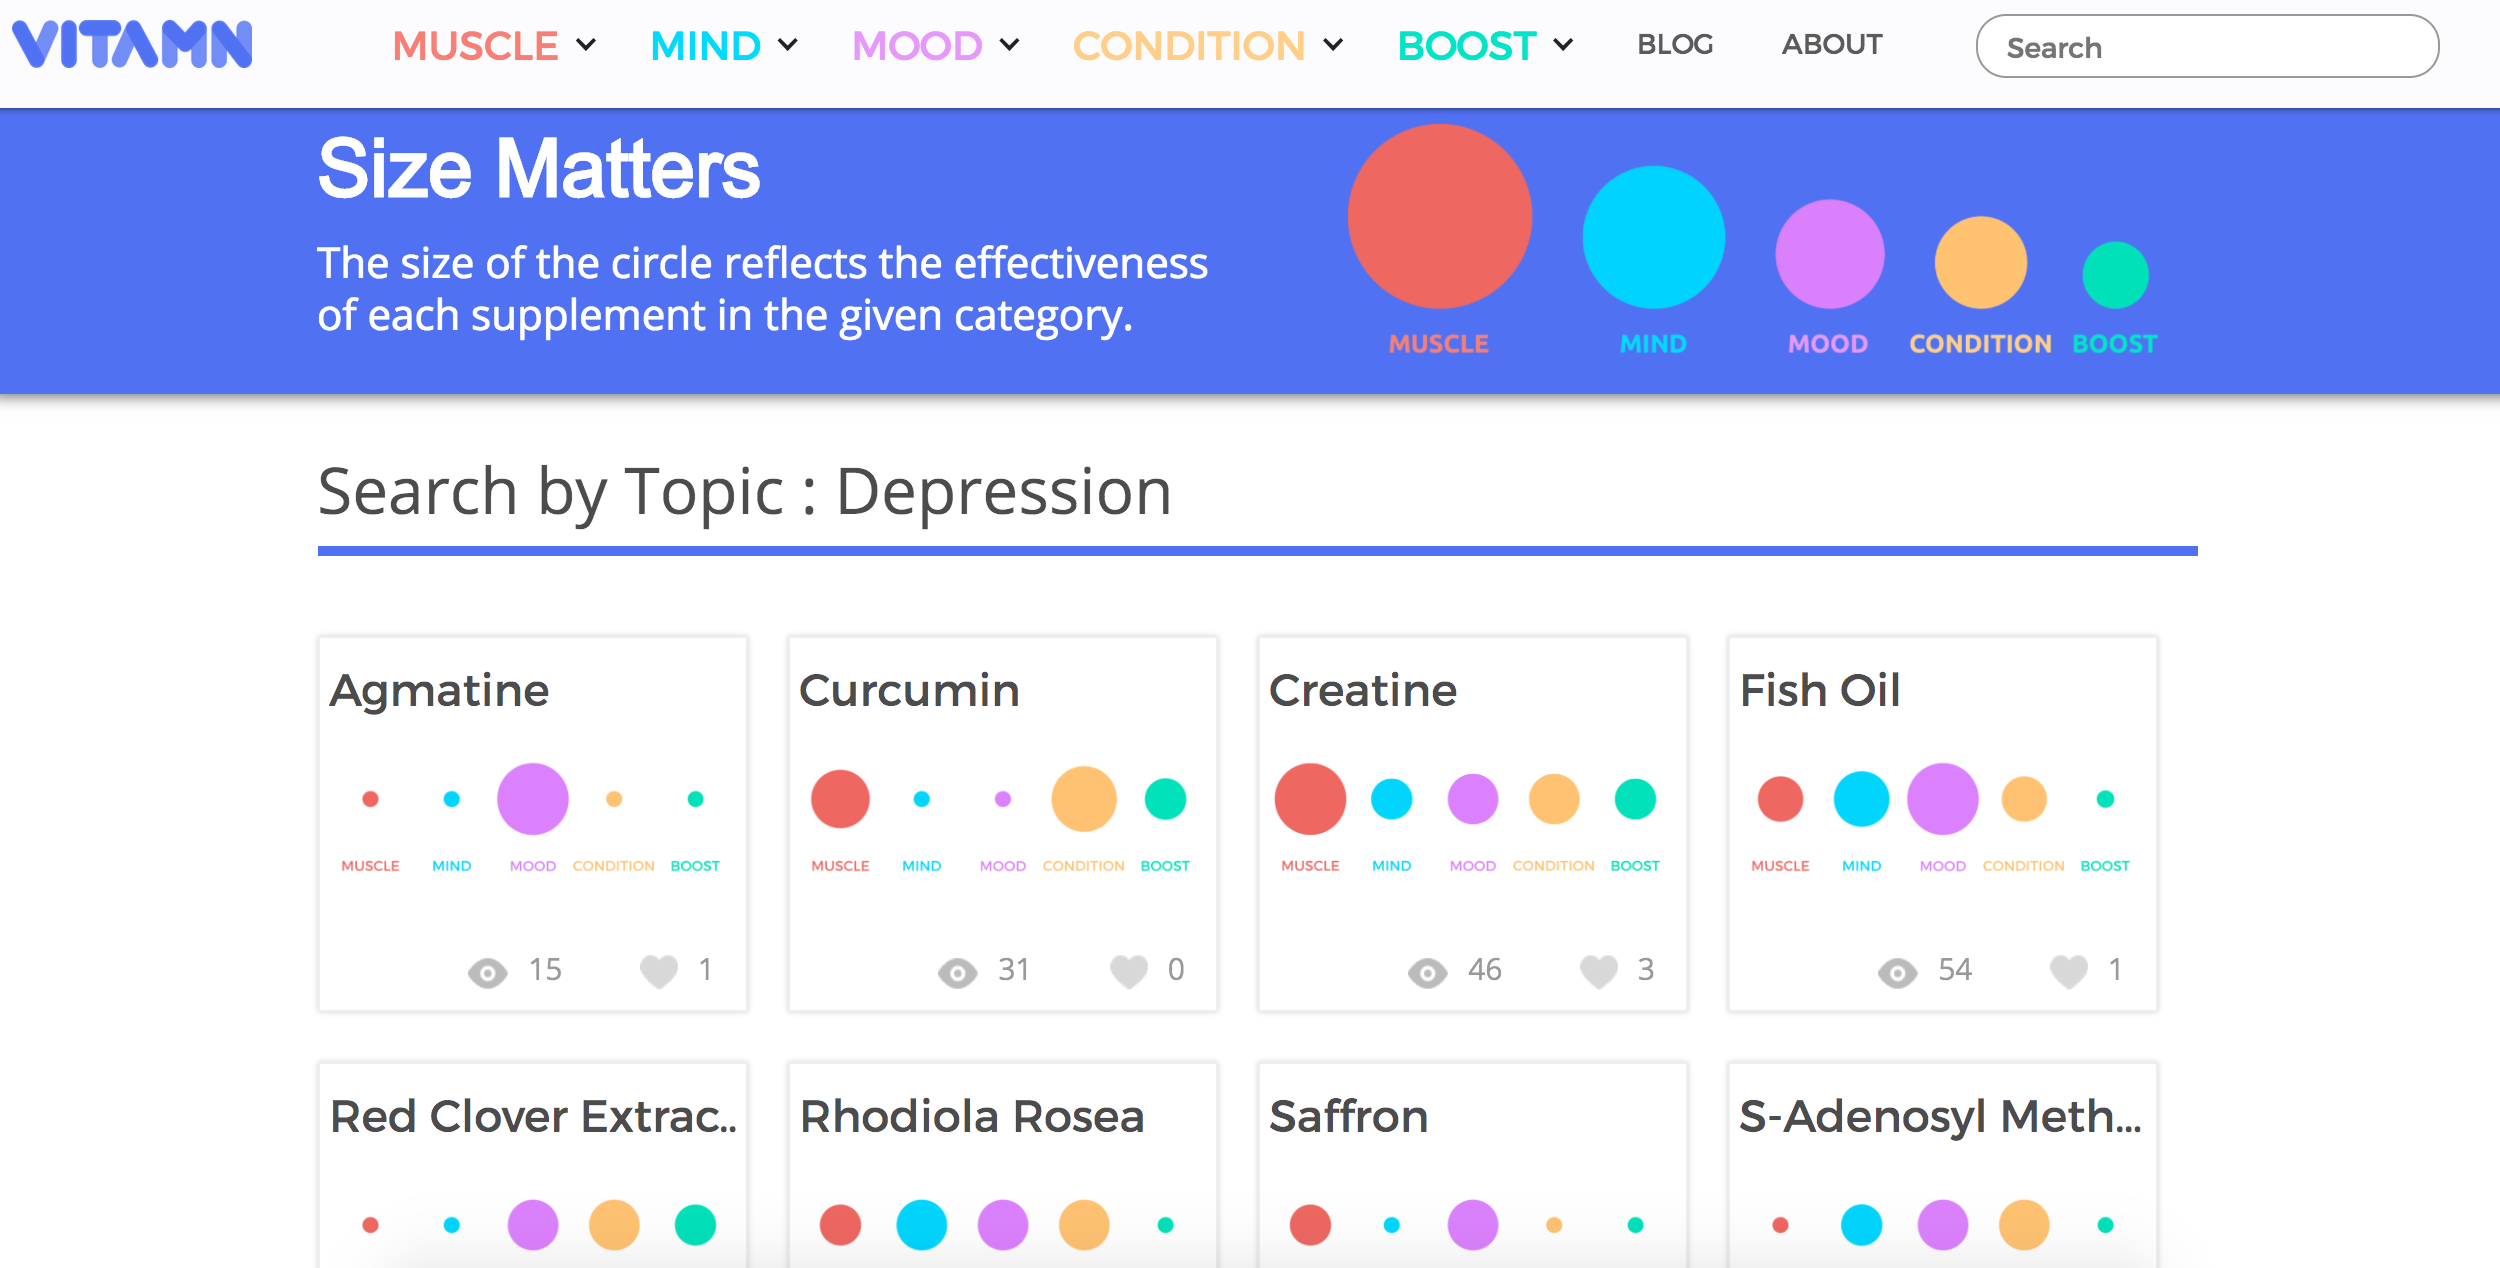 Is there any good vitamins for depression? - Quora